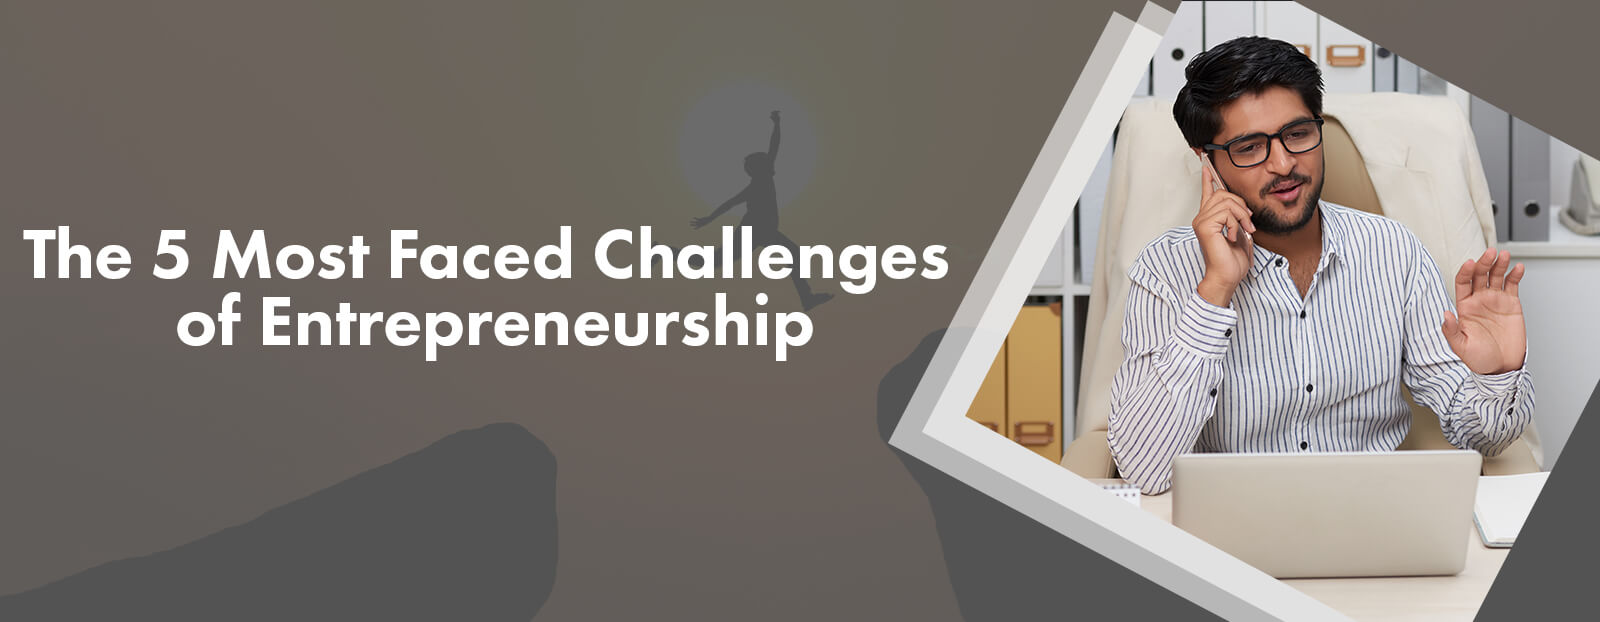 The 5 Most Faced Challenges of Entrepreneurship